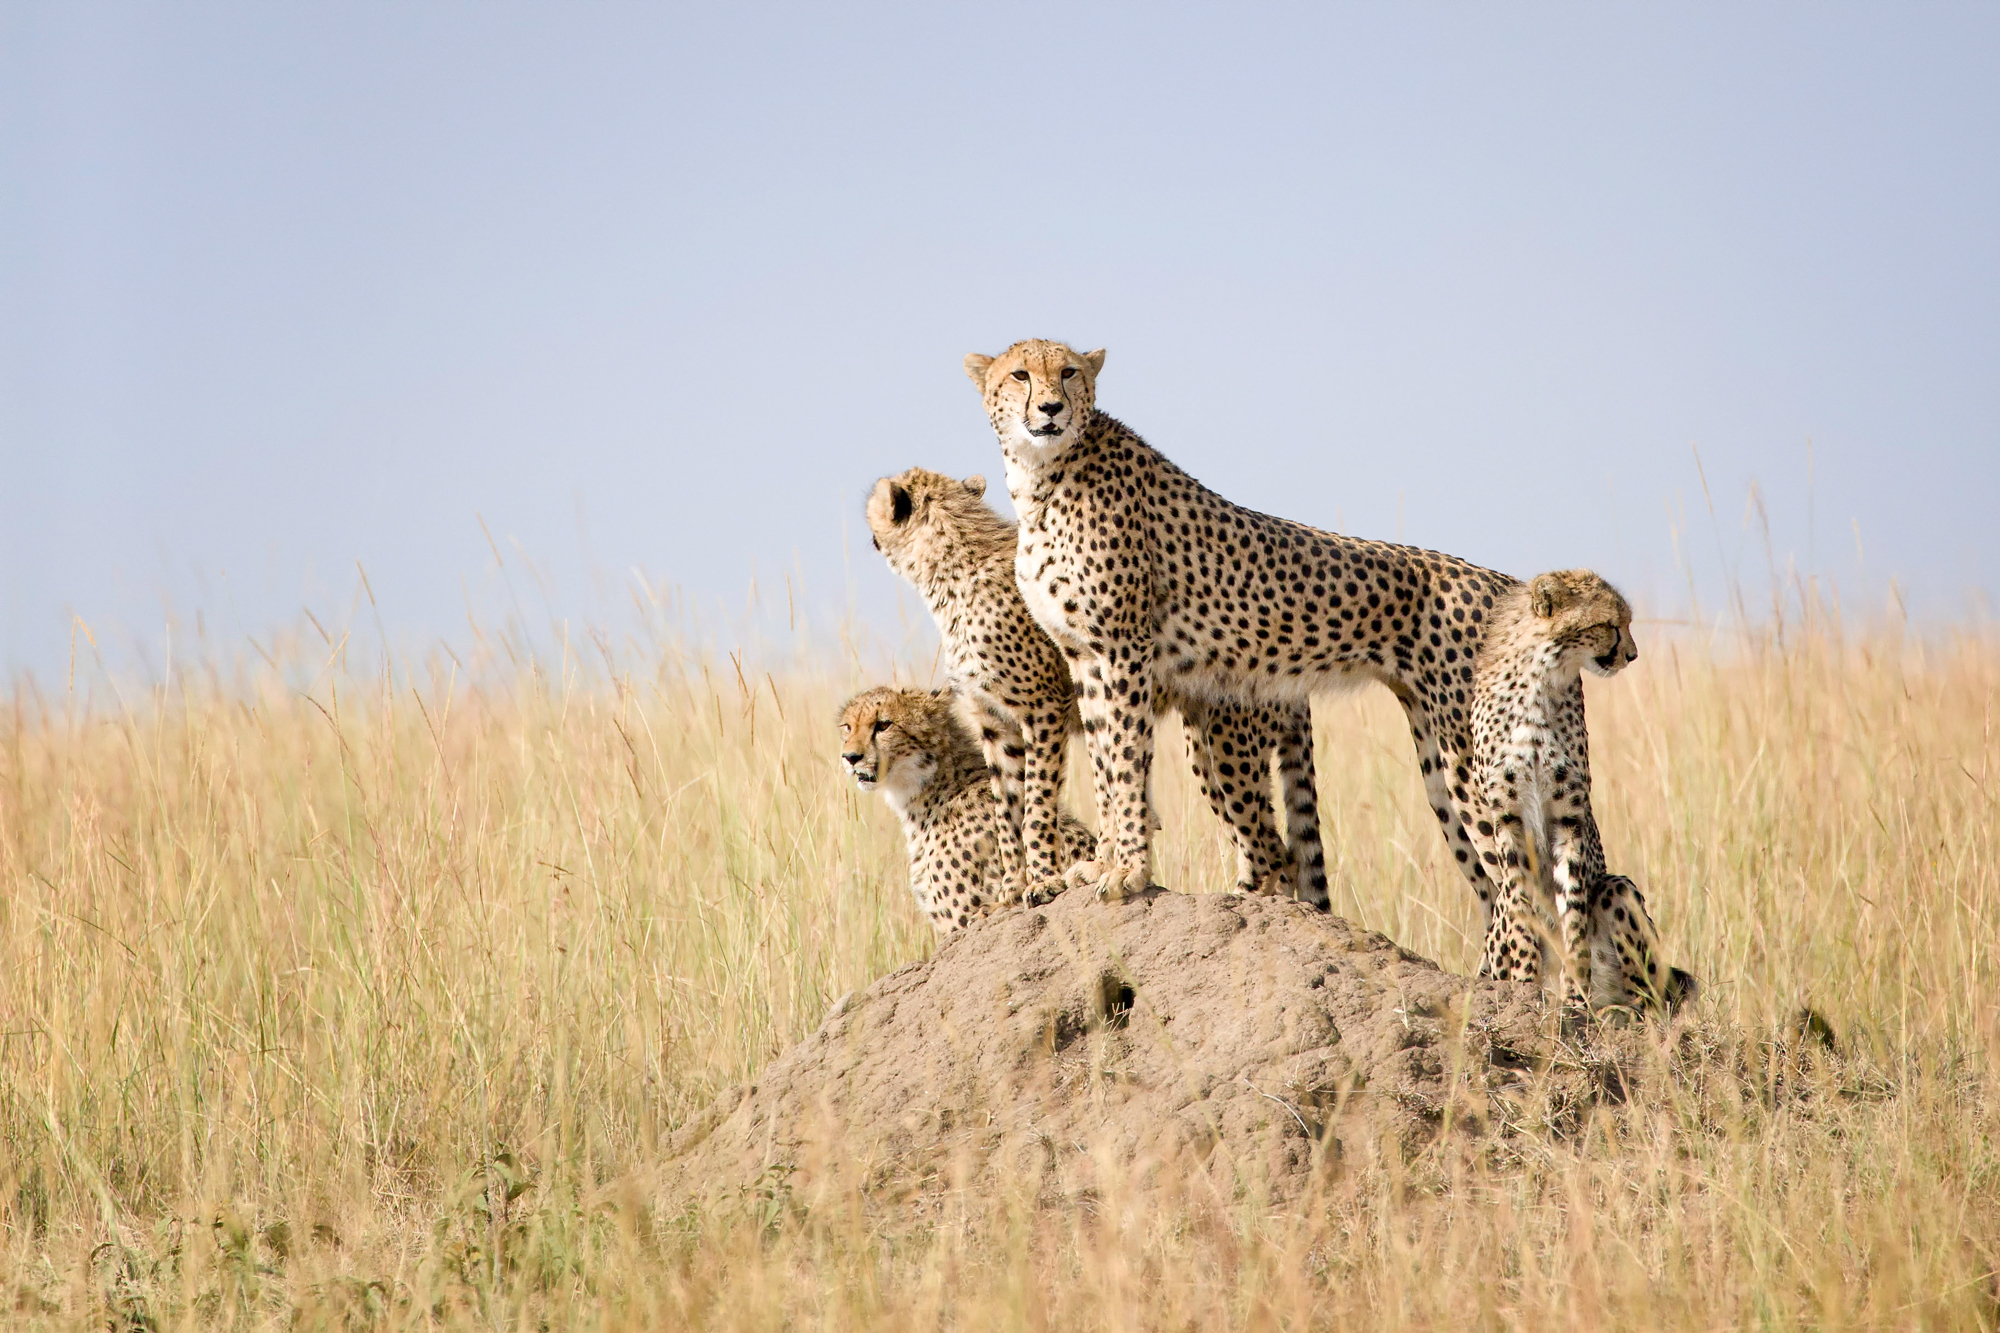 Family of cheetahs using a termite hill to look out over the Maasai Mara plains